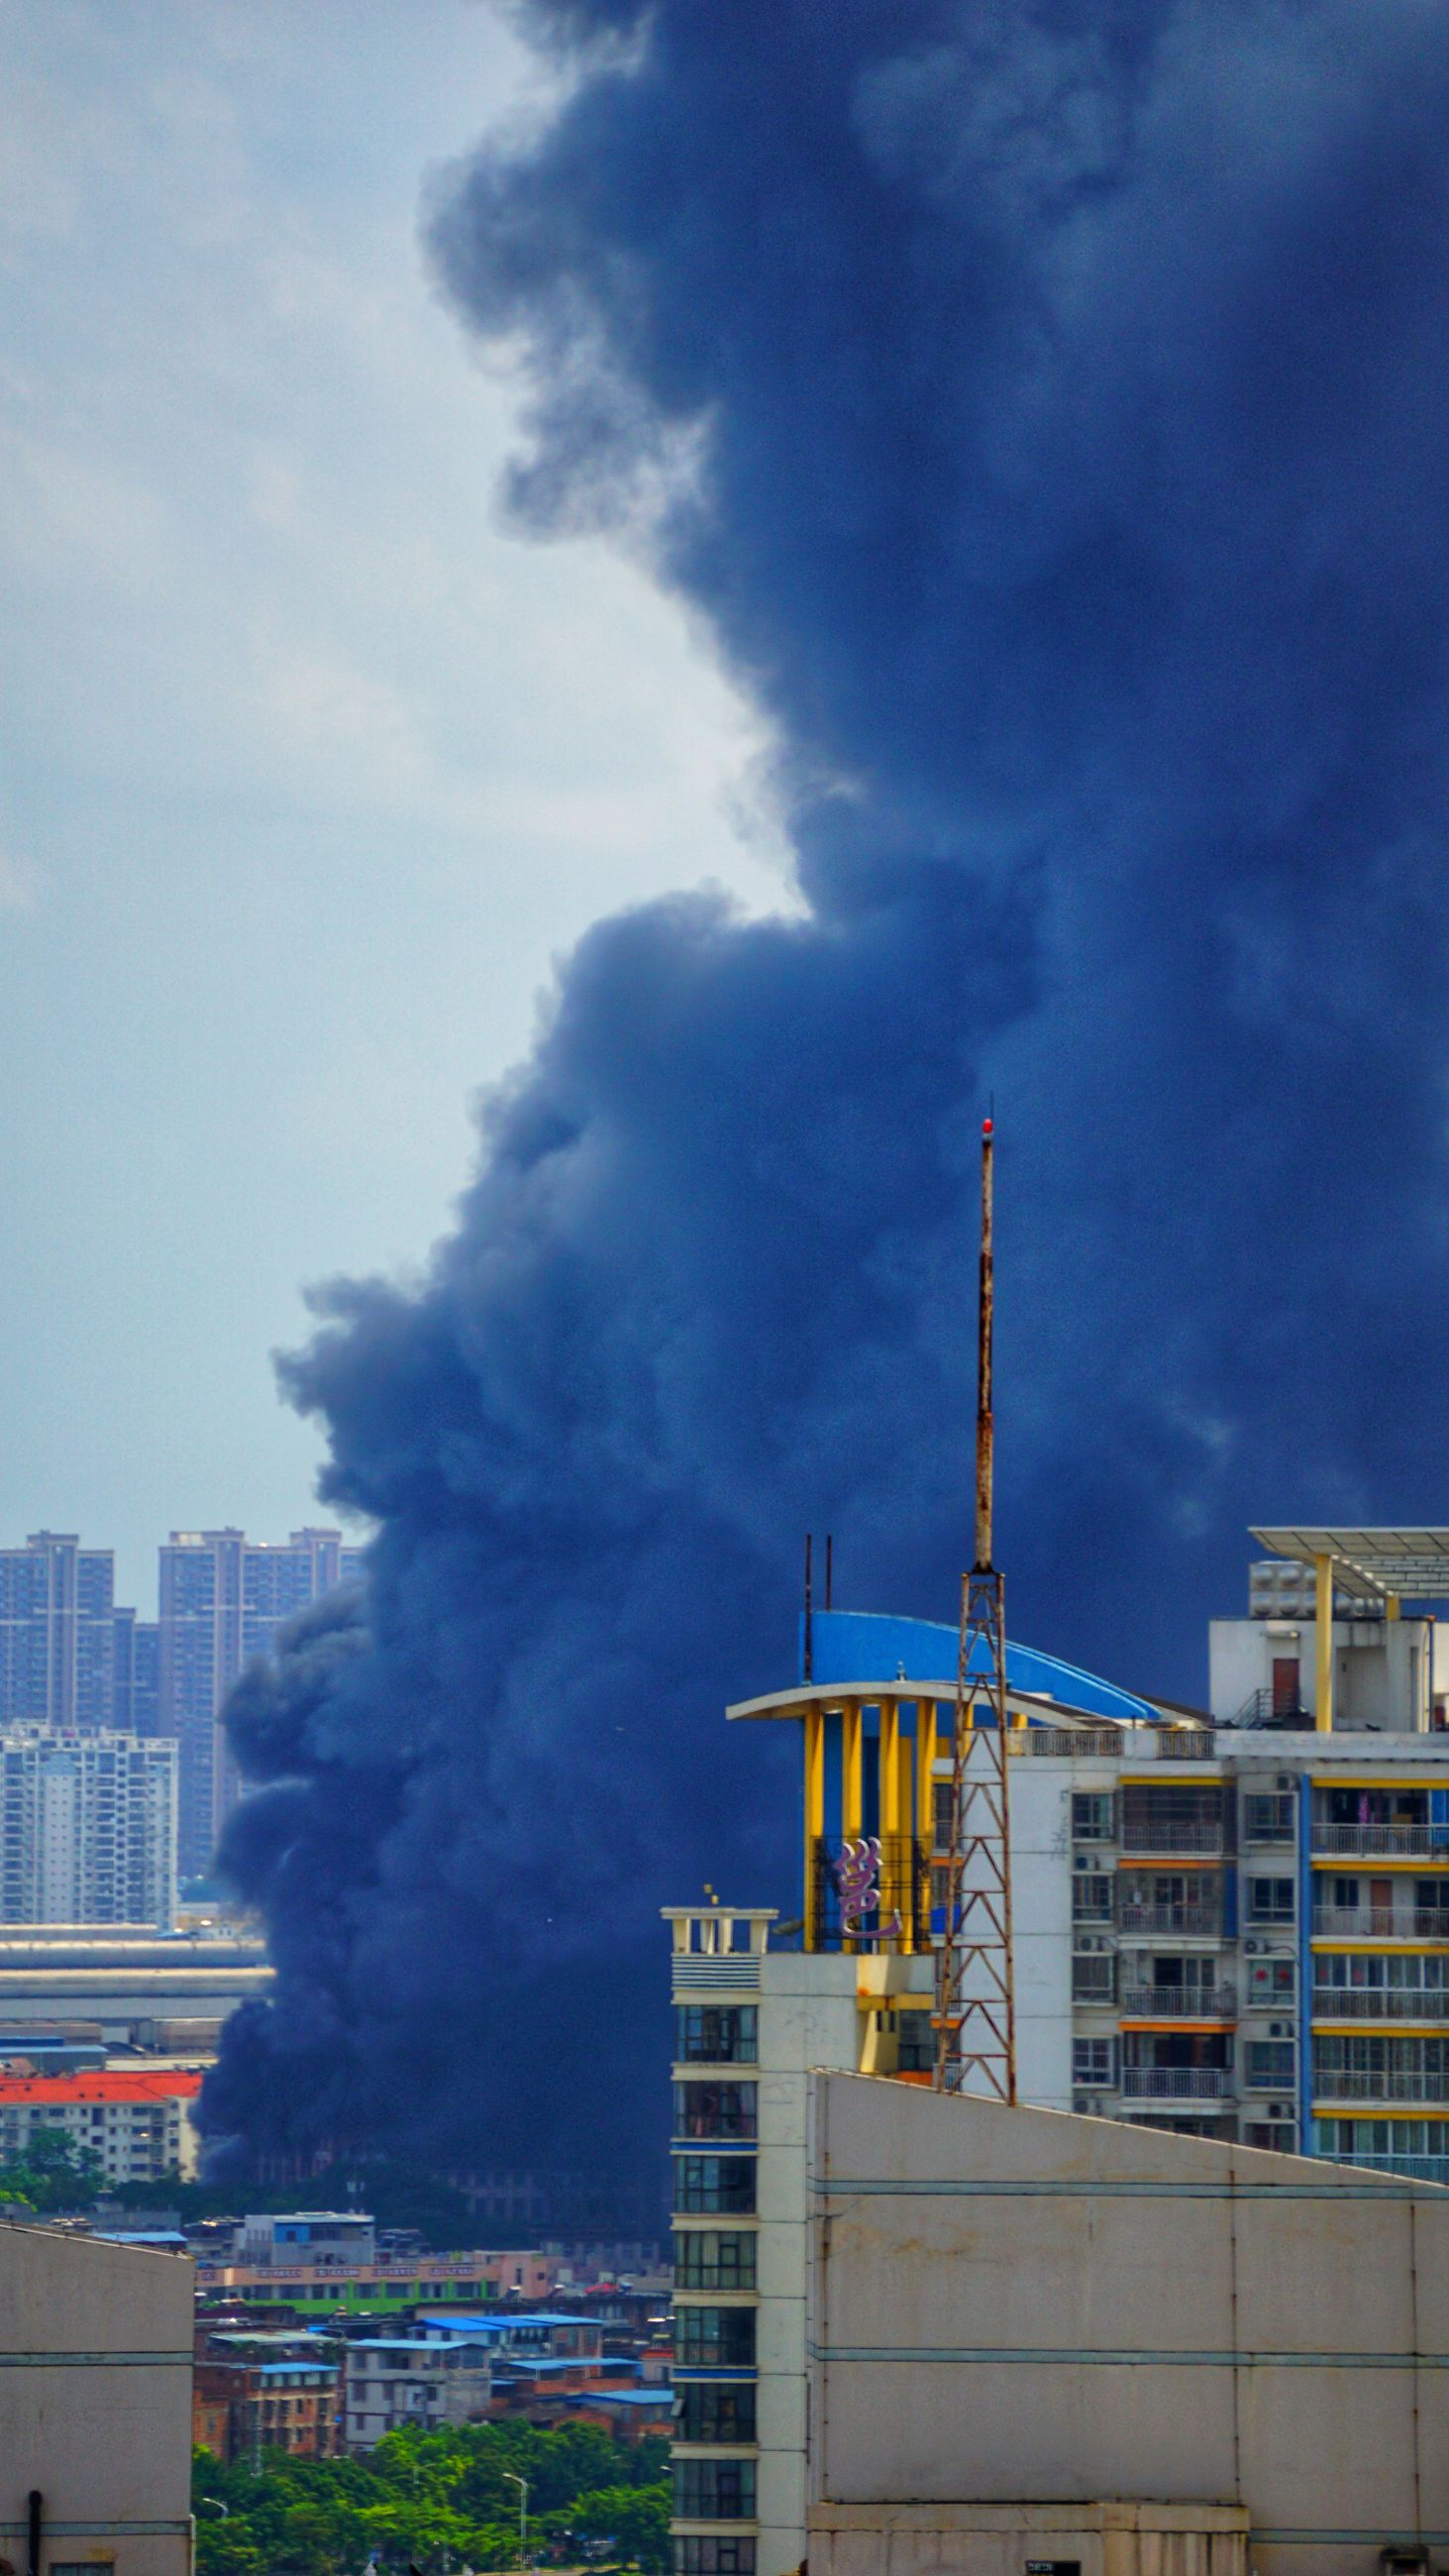 building exterior, architecture, sky, built structure, cloud - sky, smoke - physical structure, industry, city, nature, no people, outdoors, building, day, development, emitting, factory, machinery, construction industry, blue, environmental issues, pollution, office building exterior, air pollution